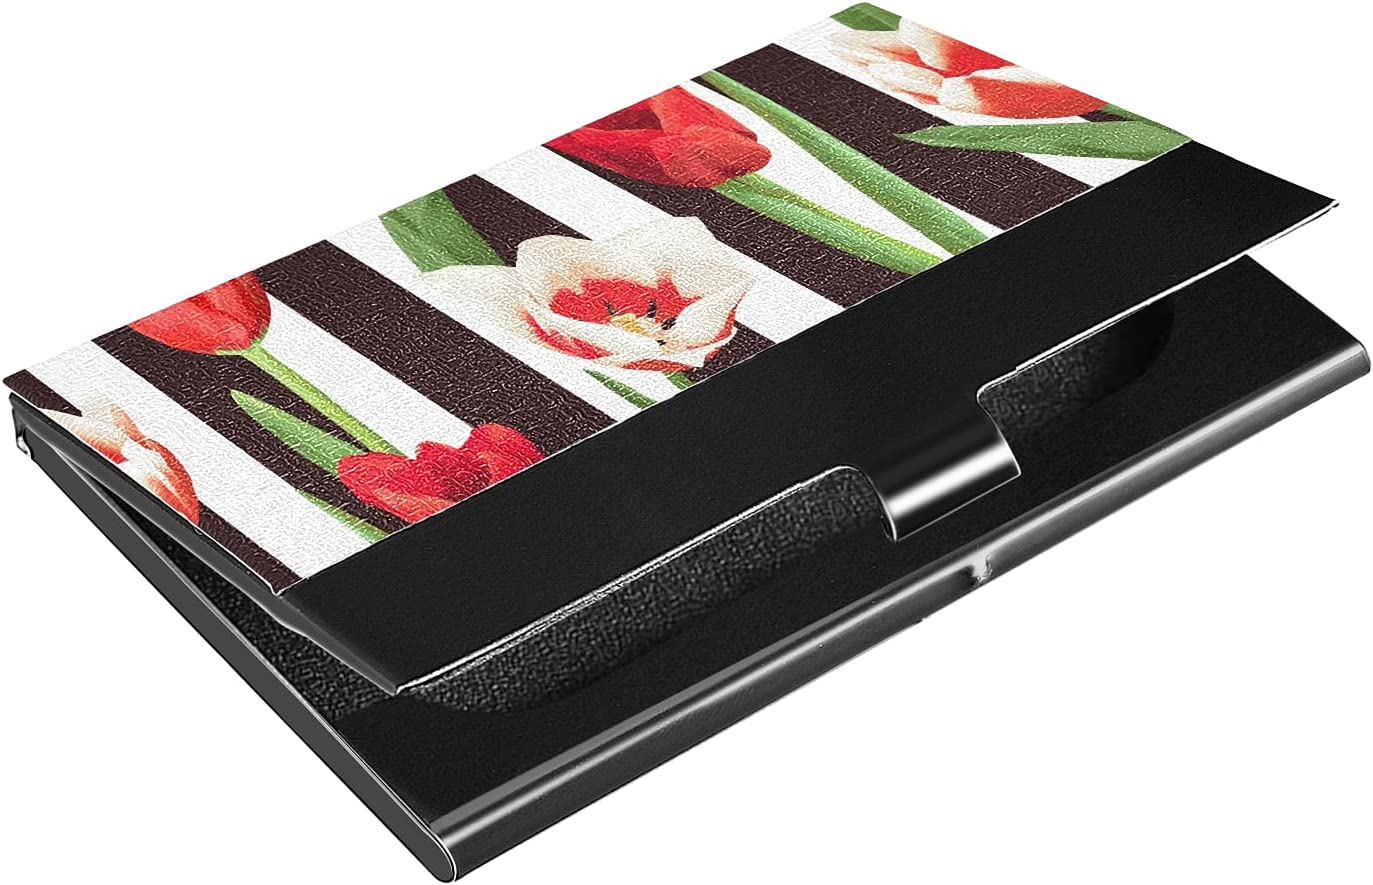 OTVEE Red and White Tulips Business Card Holder Wallet Stainless Steel & Leather Pocket Business Card Case Organizer Slim Name Card ID Card Holders Credit Card Wallet Carrier Purse for Women Men